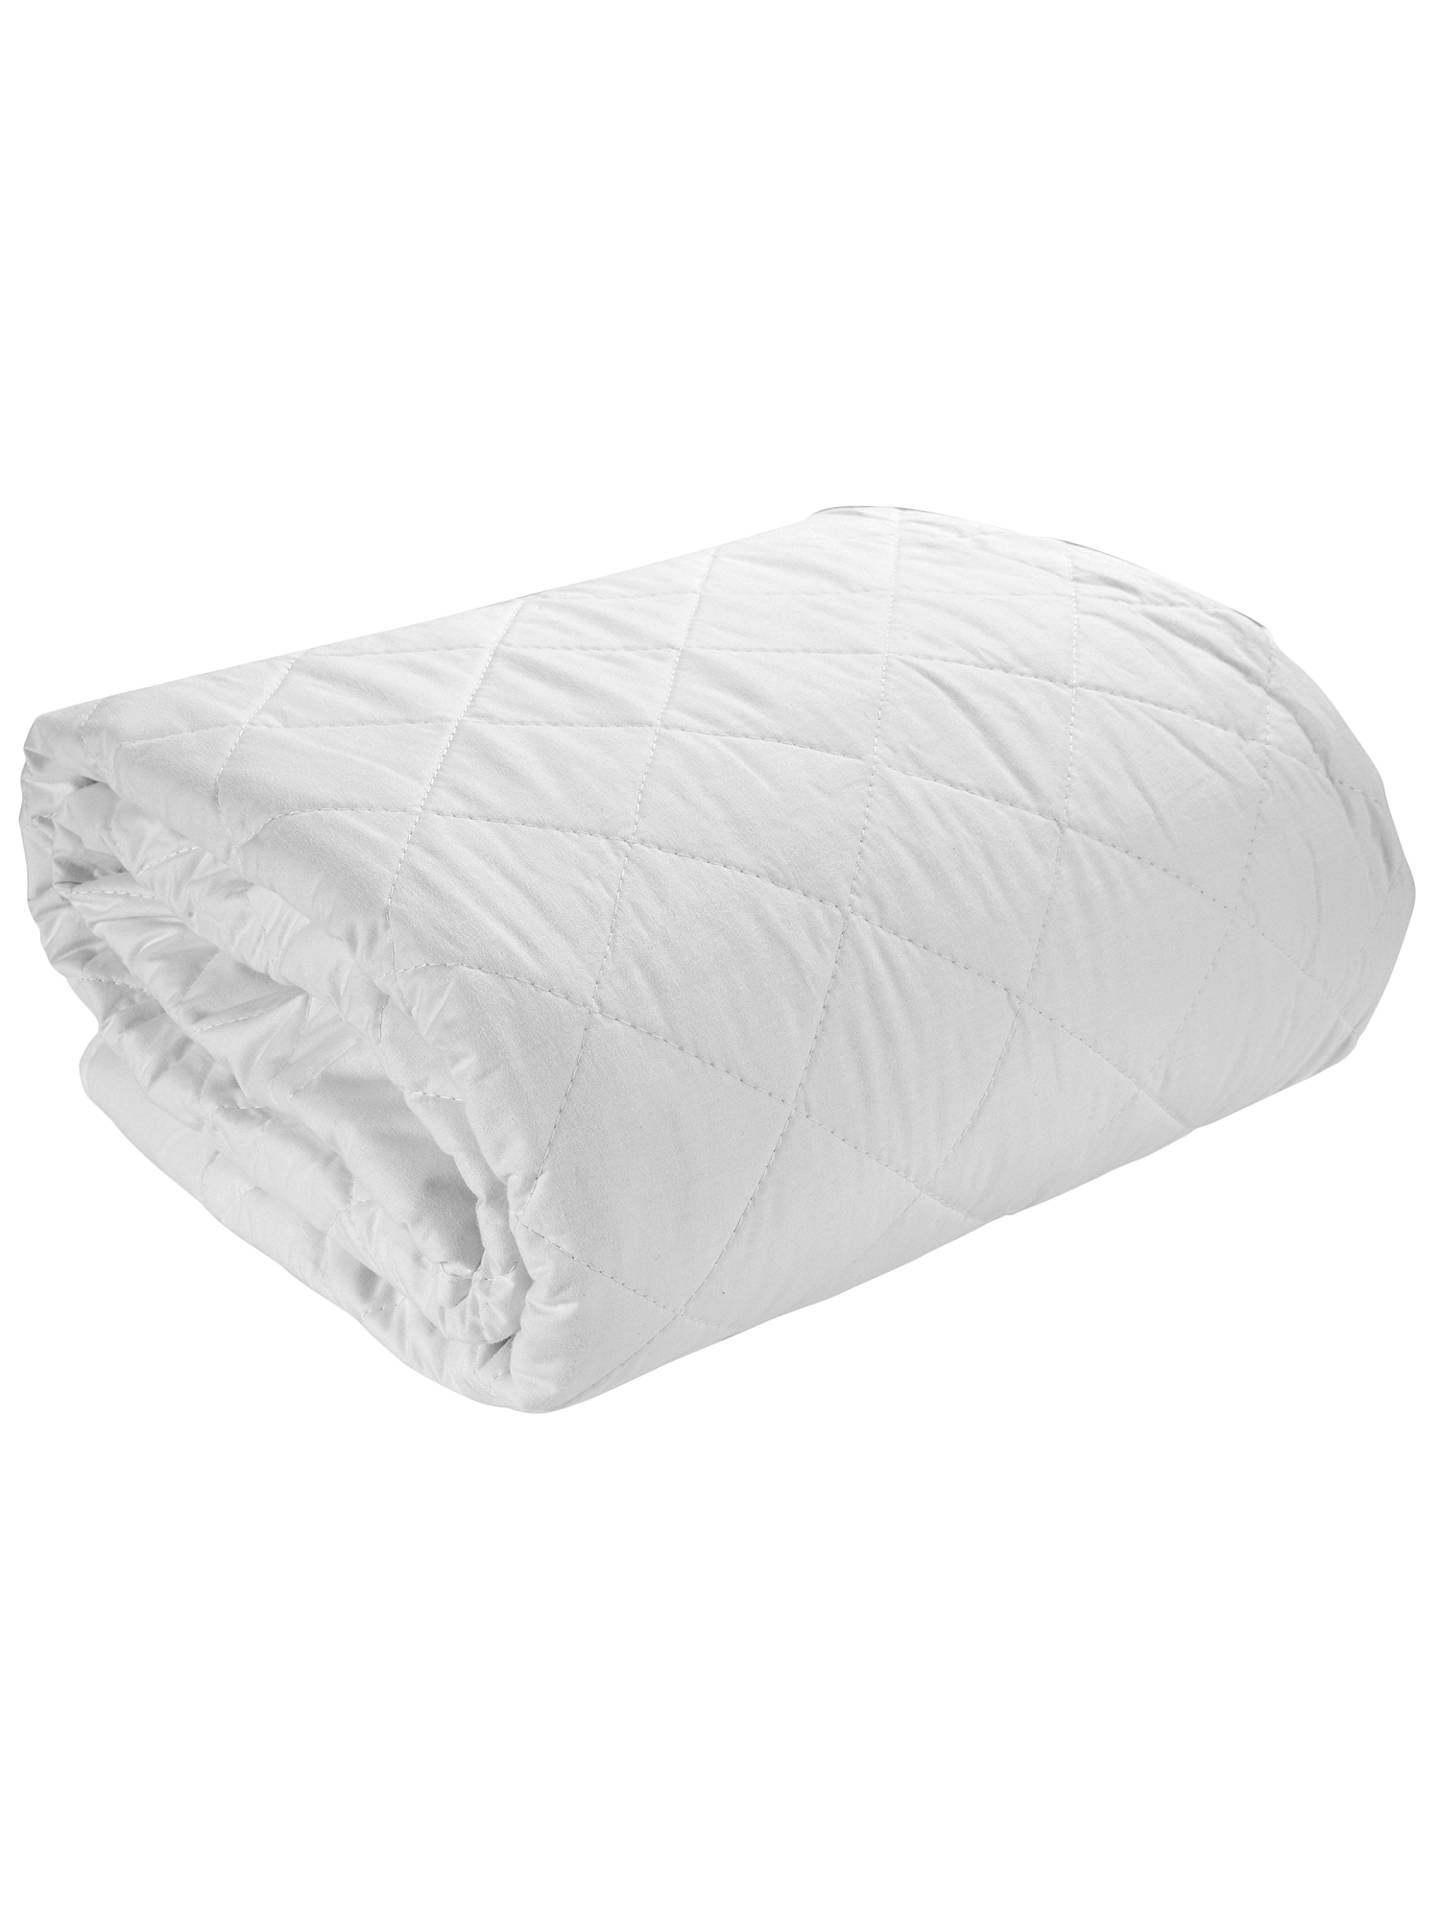 BuyJohn Lewis & Partners Wool Cotbed Duvet Online at johnlewis.com